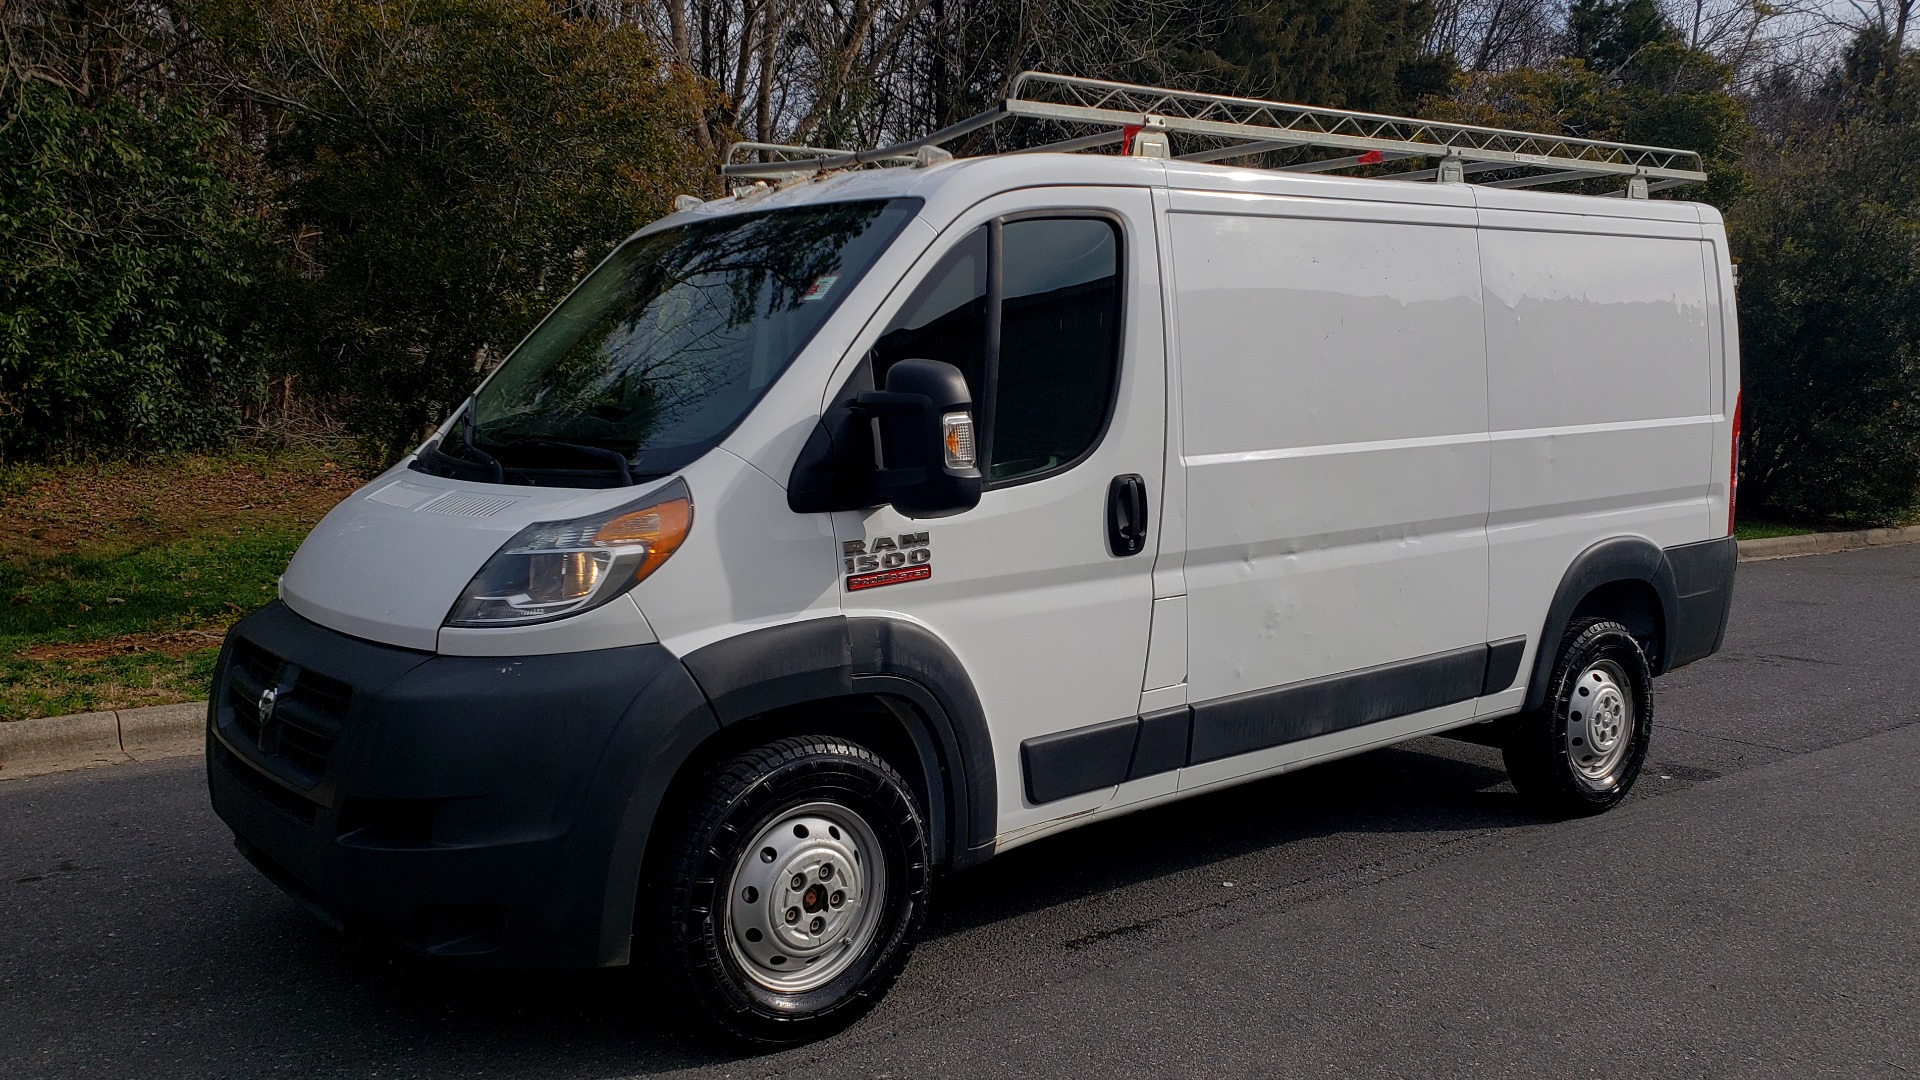 Used 2016 Ram PROMASTER CARGO VAN 136 WB / LOW ROOF / 3.6L V6 / 6-SPD AUTO / REARVIEW for sale $17,500 at Formula Imports in Charlotte NC 28227 1